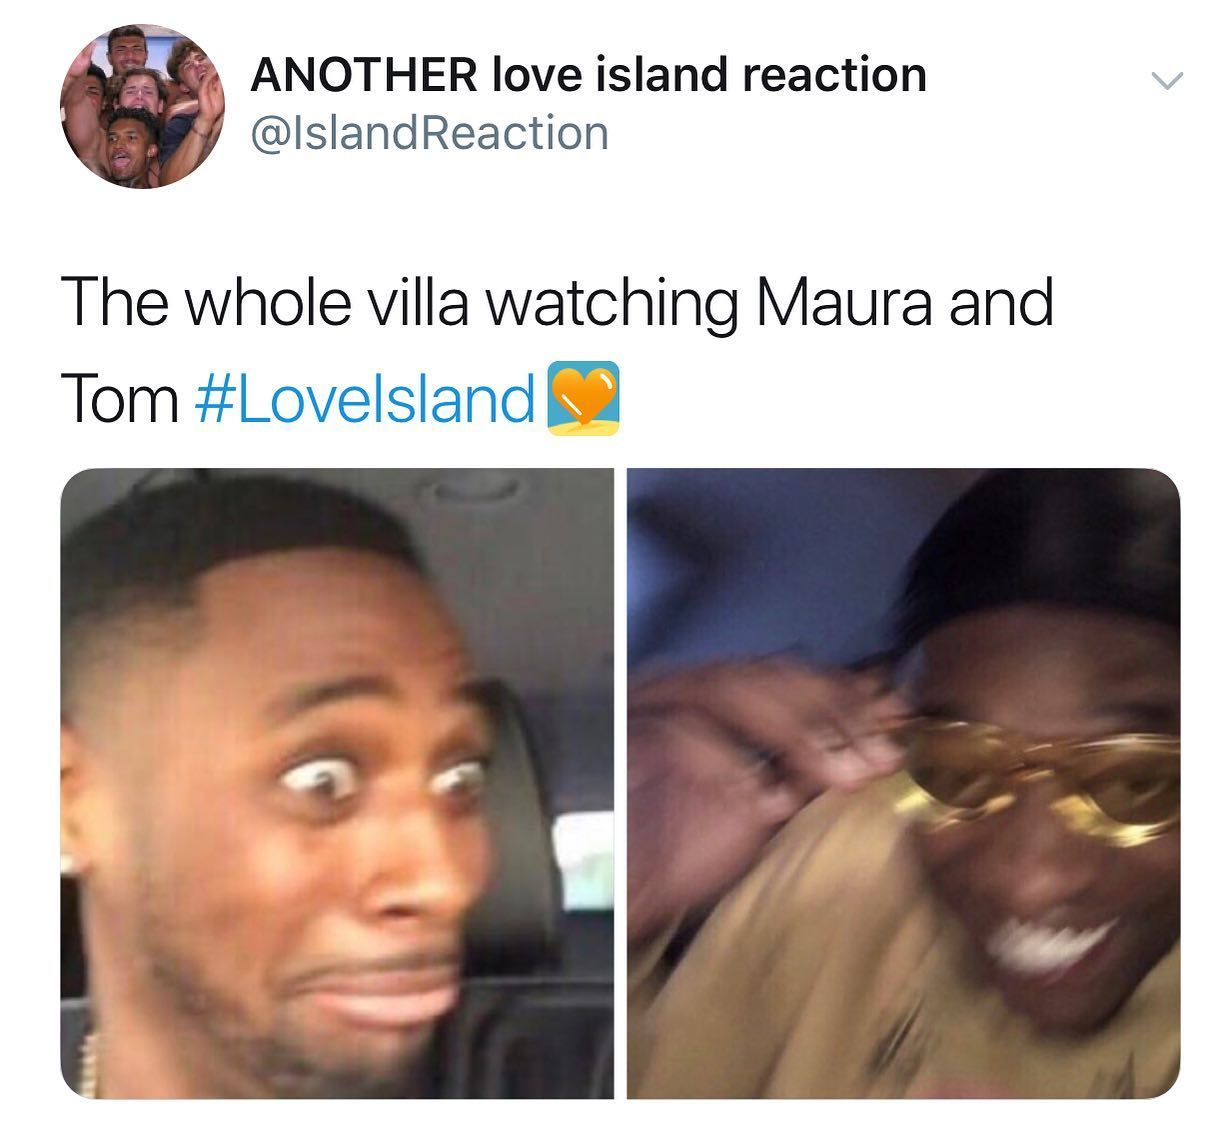 Image may contain: Maura and Tom Love Island, Tom, Maura, Higgins, Love Island, 2019, best moment, moment, all mouth, comment, memes, reaction, twitter, funny, savage,  Photography, Portrait, Photo, Id Cards, Document, Head, Text, Accessories, Accessory, Glasses, Face, Person, Human